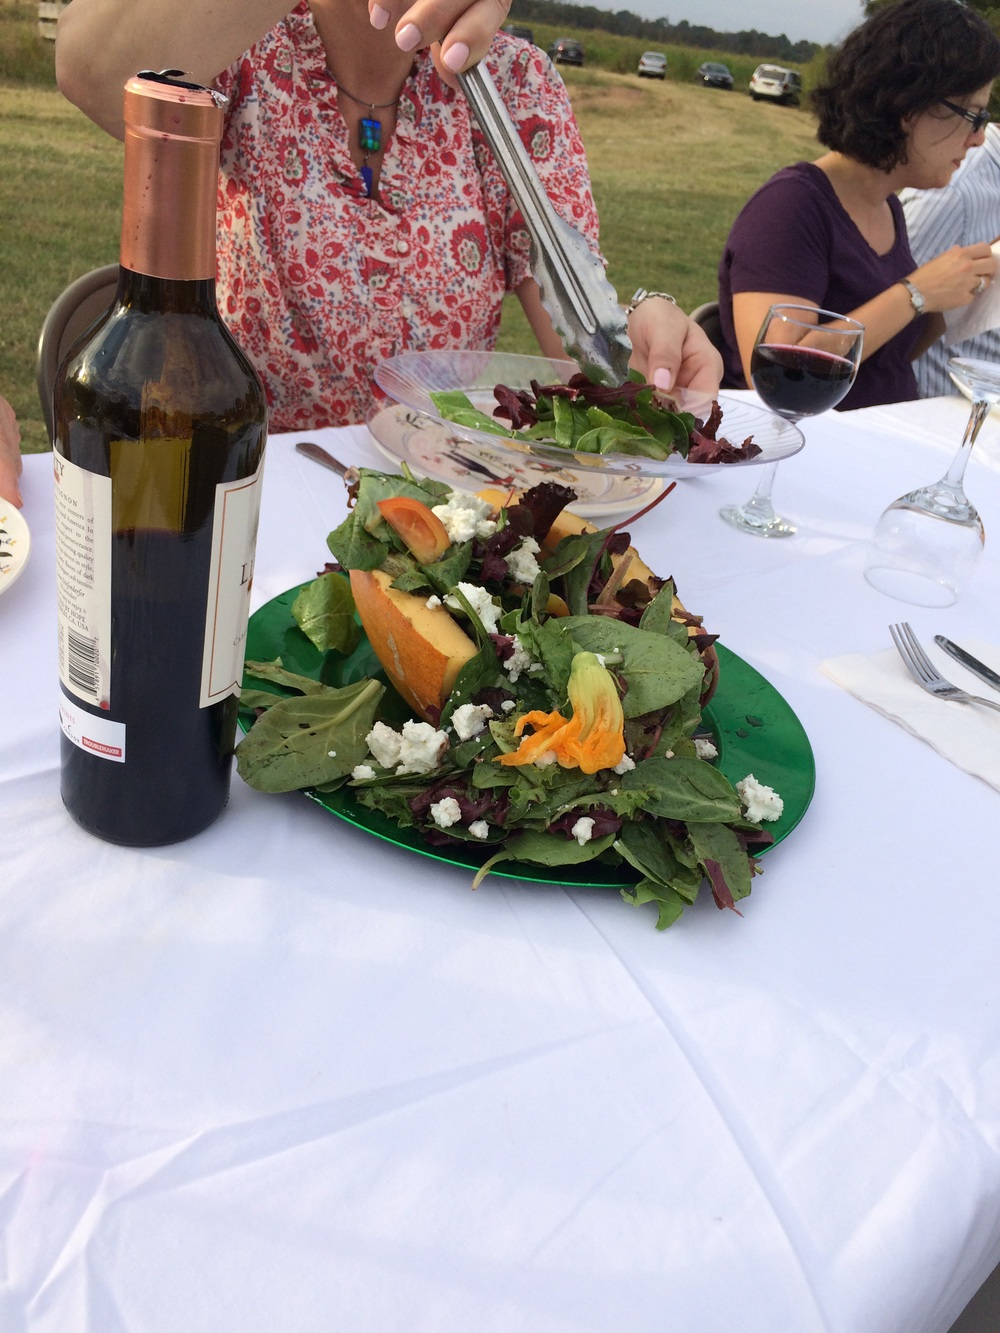 My favorite dish was the salad -- goat cheese and squash blossoms on a bed of mixed greens, dressed with a pumpkin spice vinaigrette.